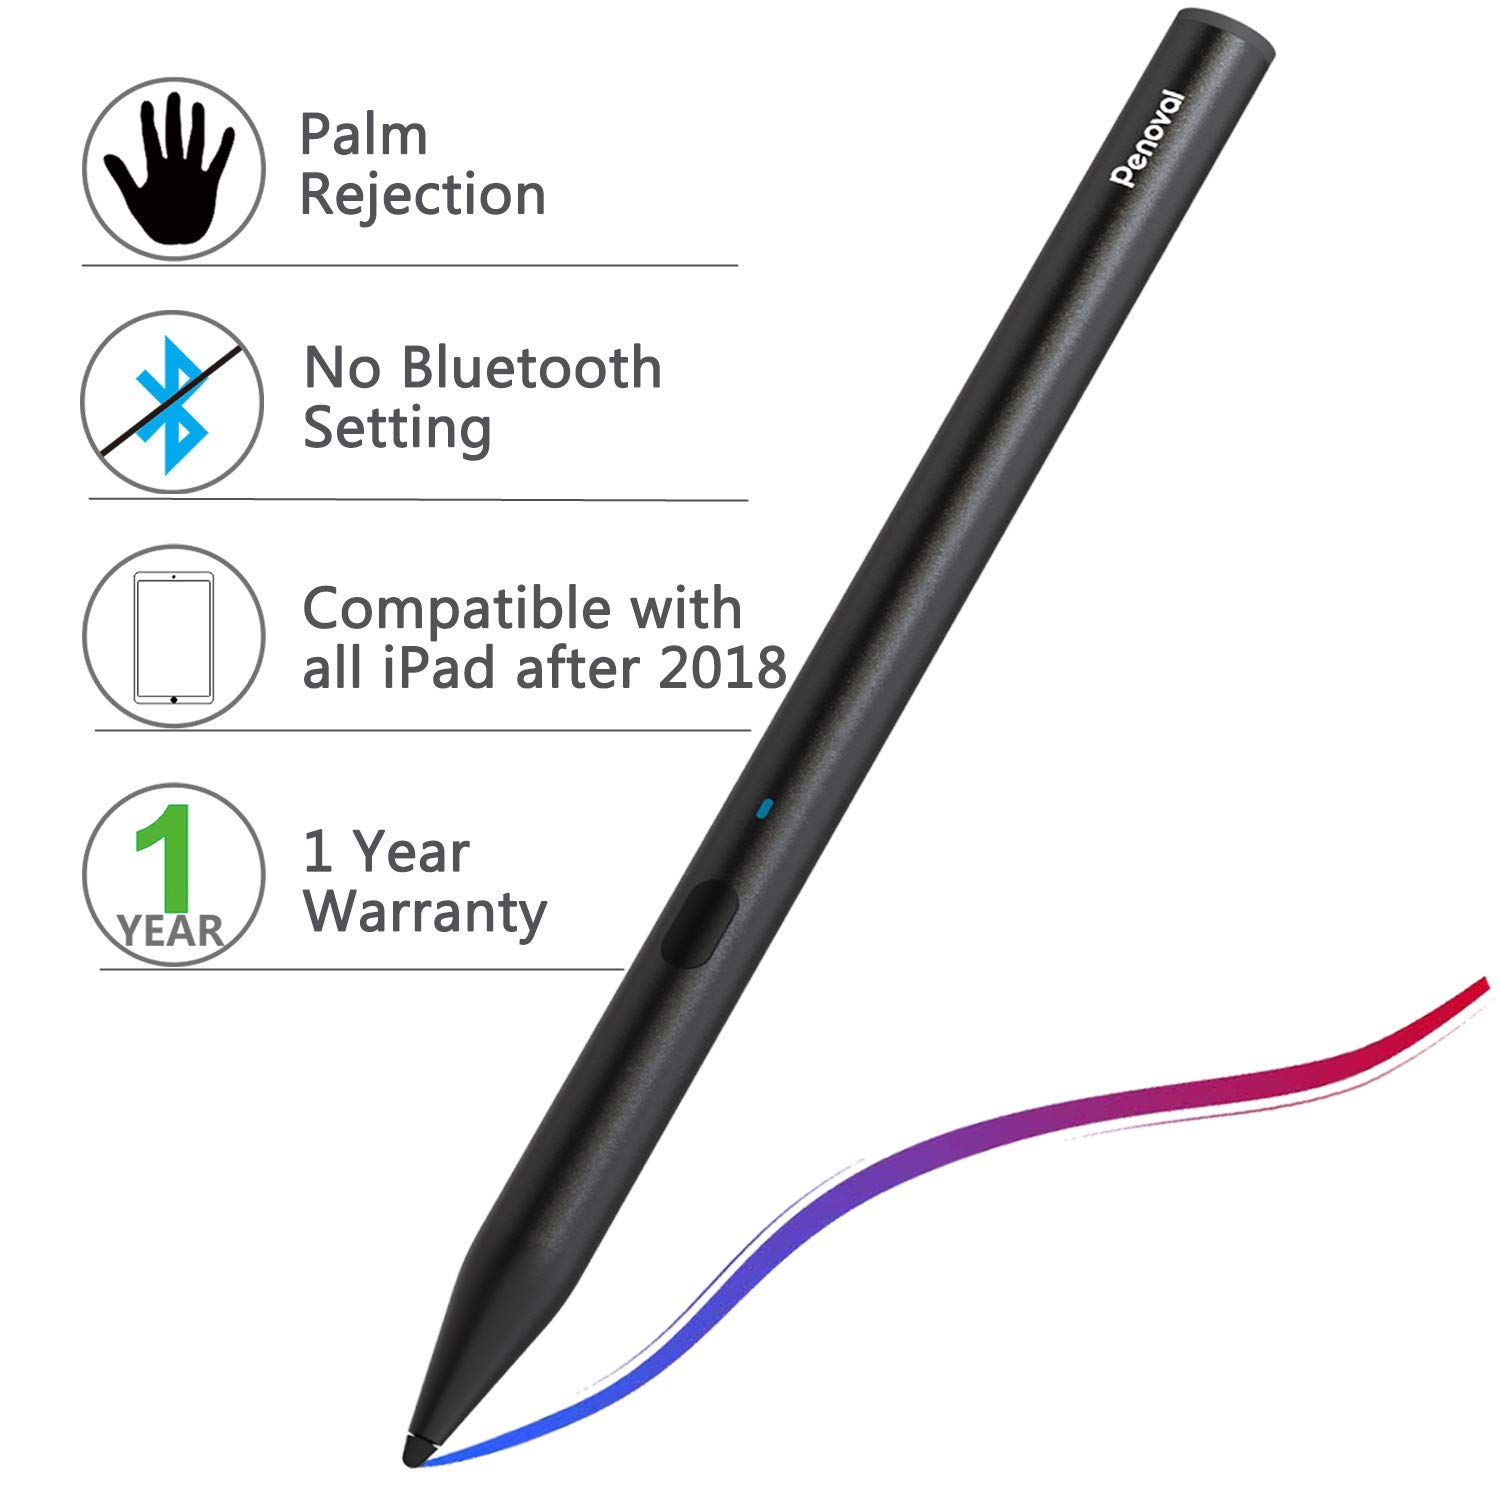 Stylus Pen for Apple iPad,Penoval Palm Rejection iPad Pencil for iPad Pro,iPad 2018,iPad air,iPad Mini(5th Gen) Active Capacitive Rechargeable Digital Pen with 2mm Replaceable Fine Point Rubber Tips by KABCON